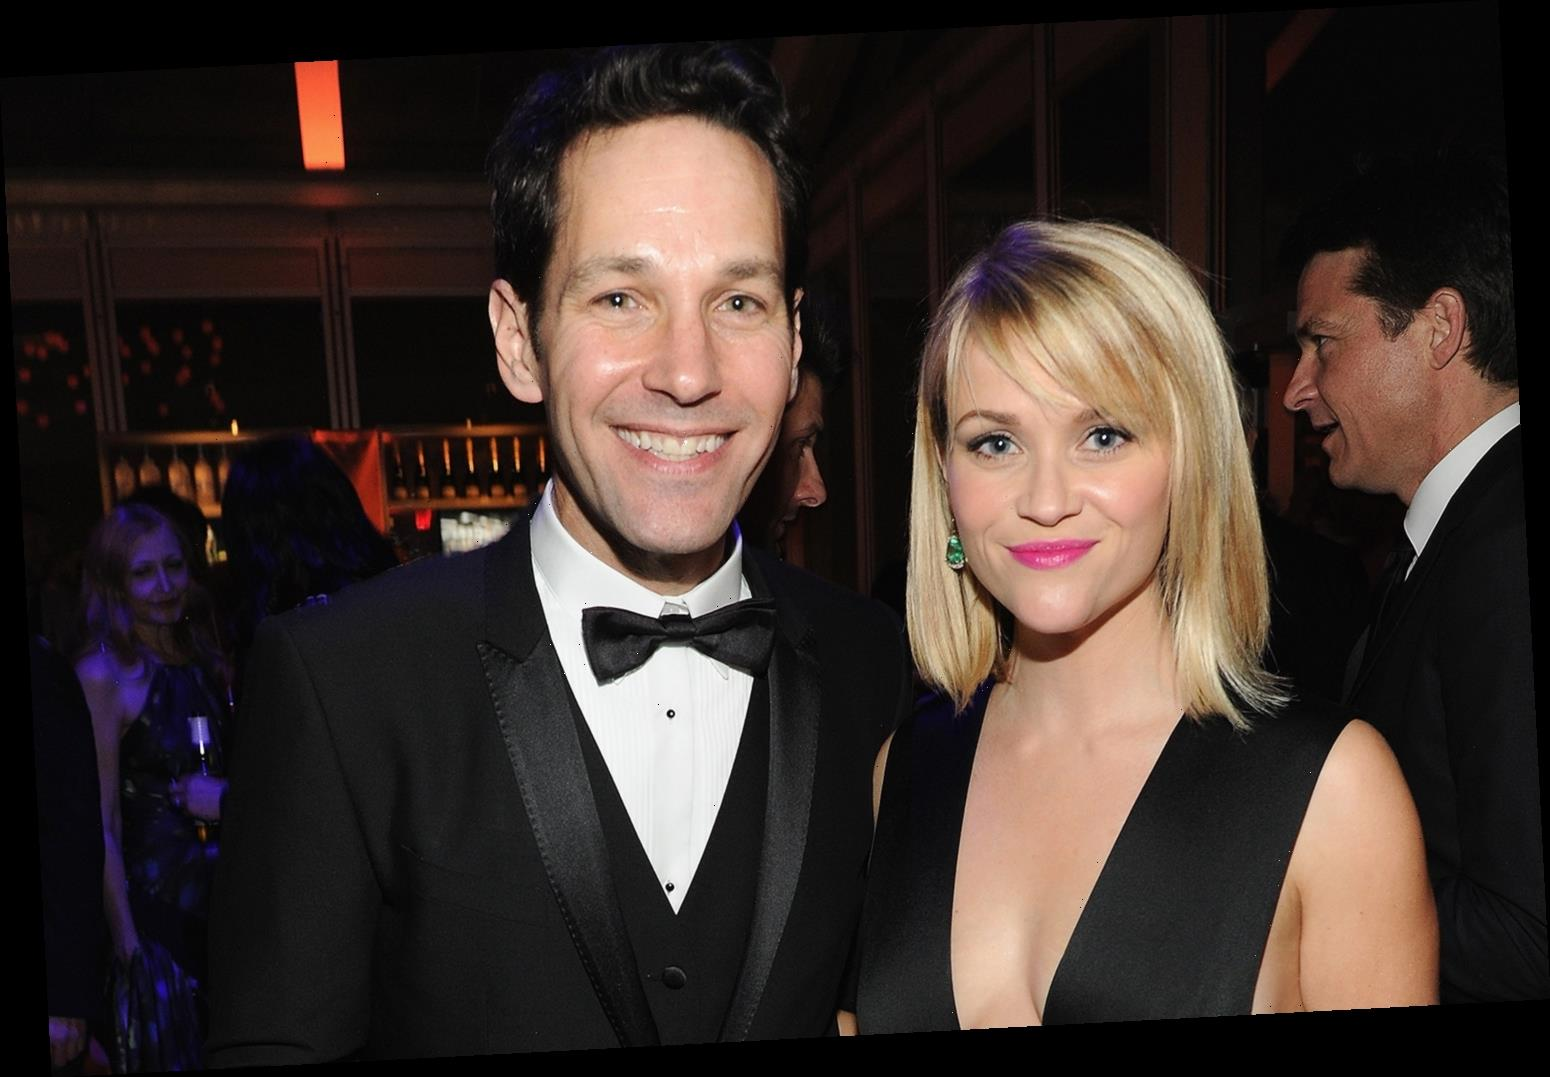 Reese Witherspoon Shares Throwback Selfie with Paul Rudd — and Looks Just Like Daughter Ava!